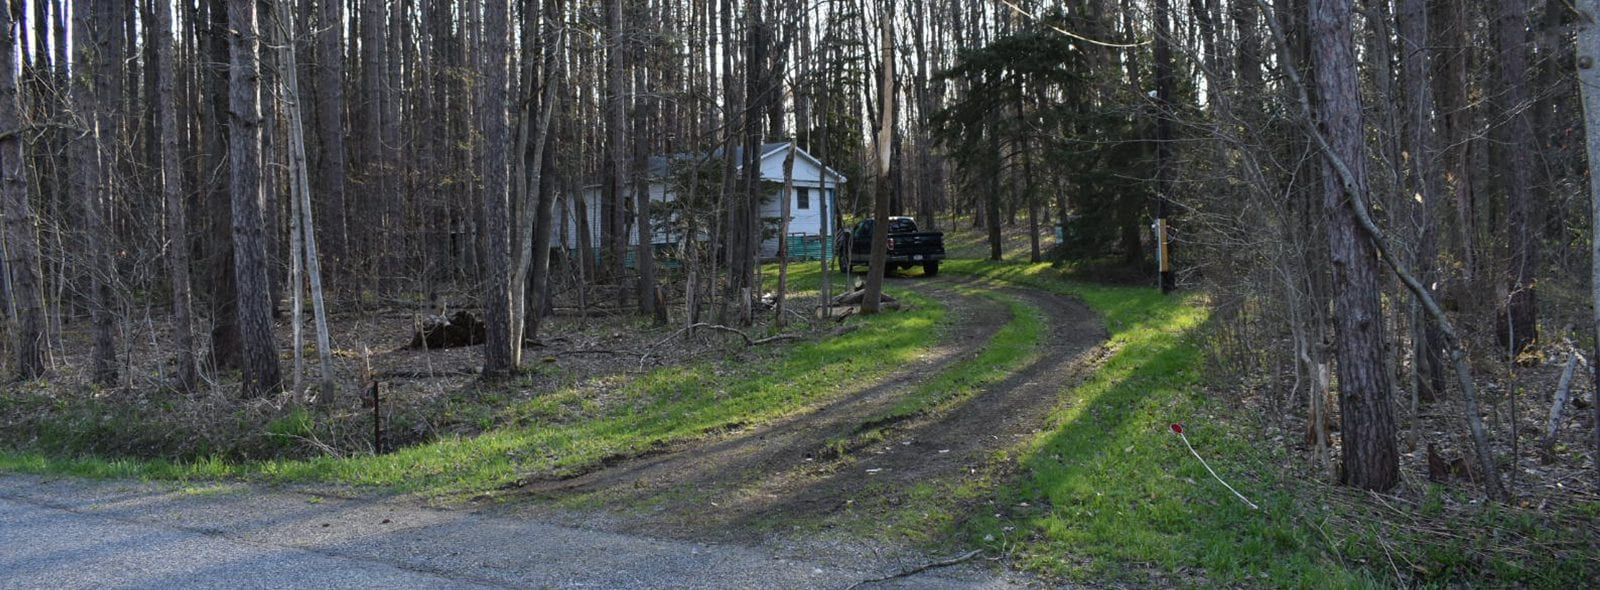 Driveway and Camp